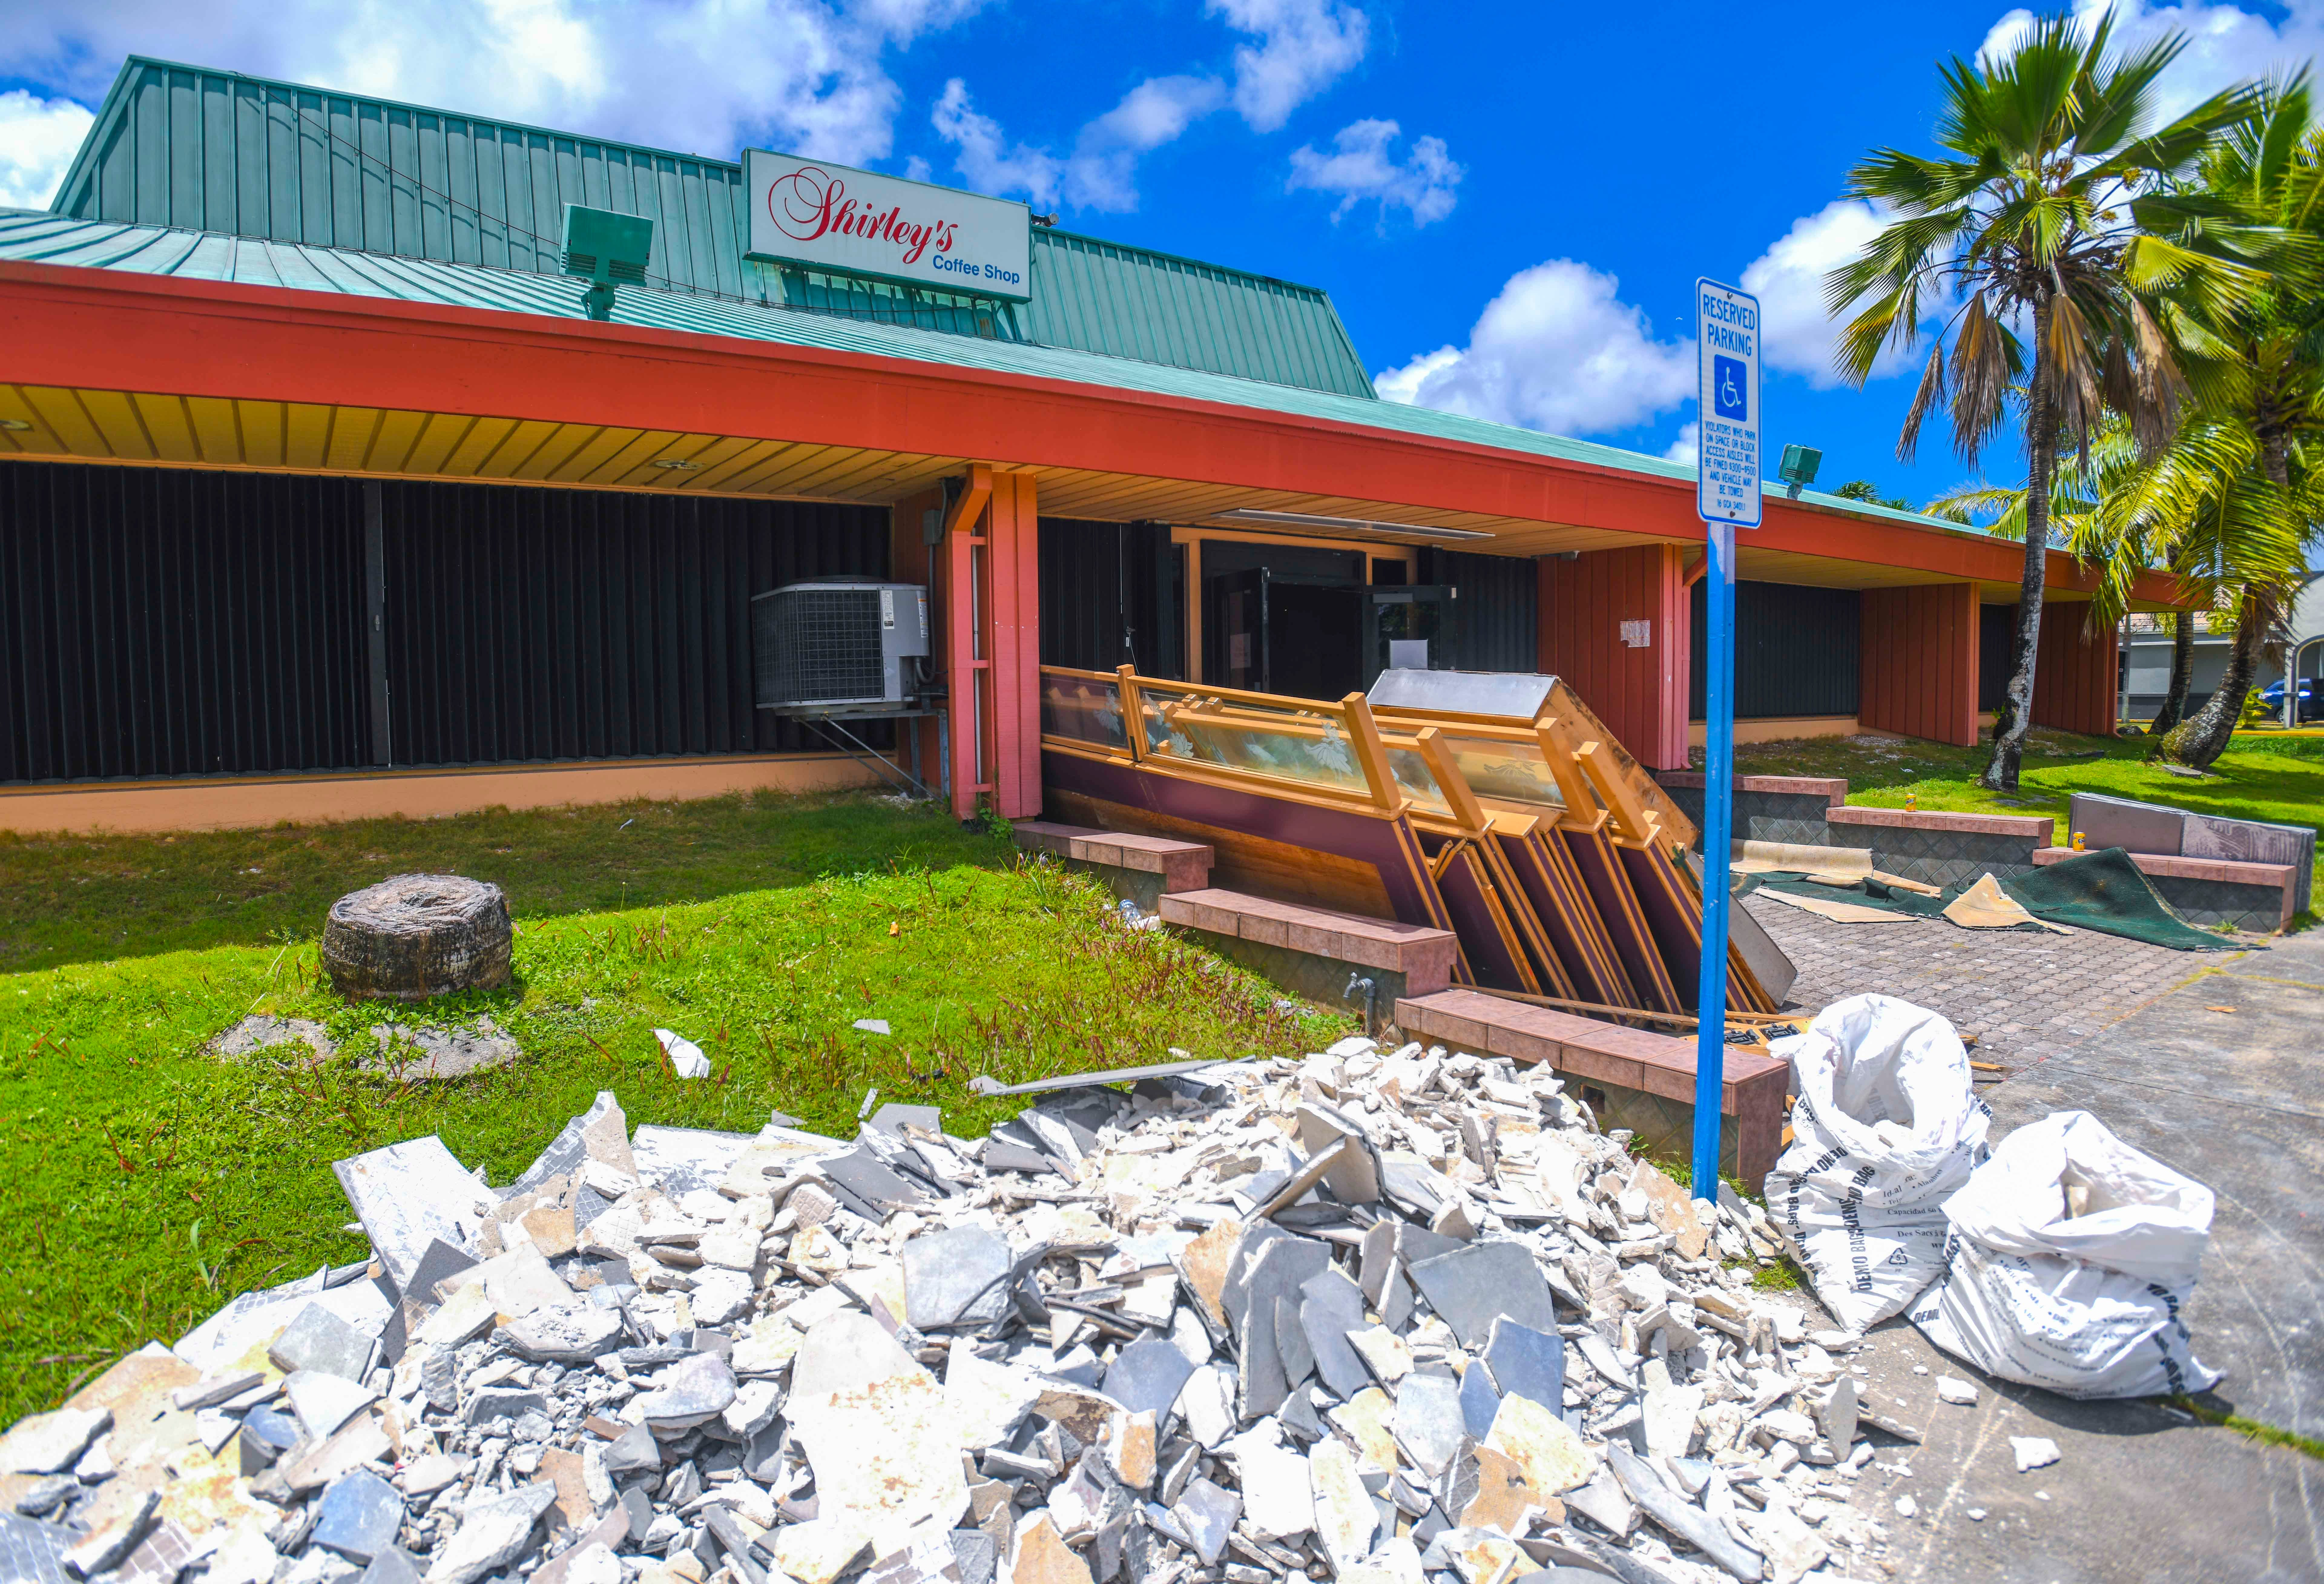 Construction debris can be found outside the former Shirley's Coffee Shop as demolition work is performed within the building, near the Agana Shopping Center, on Saturday, June 27, 2020.